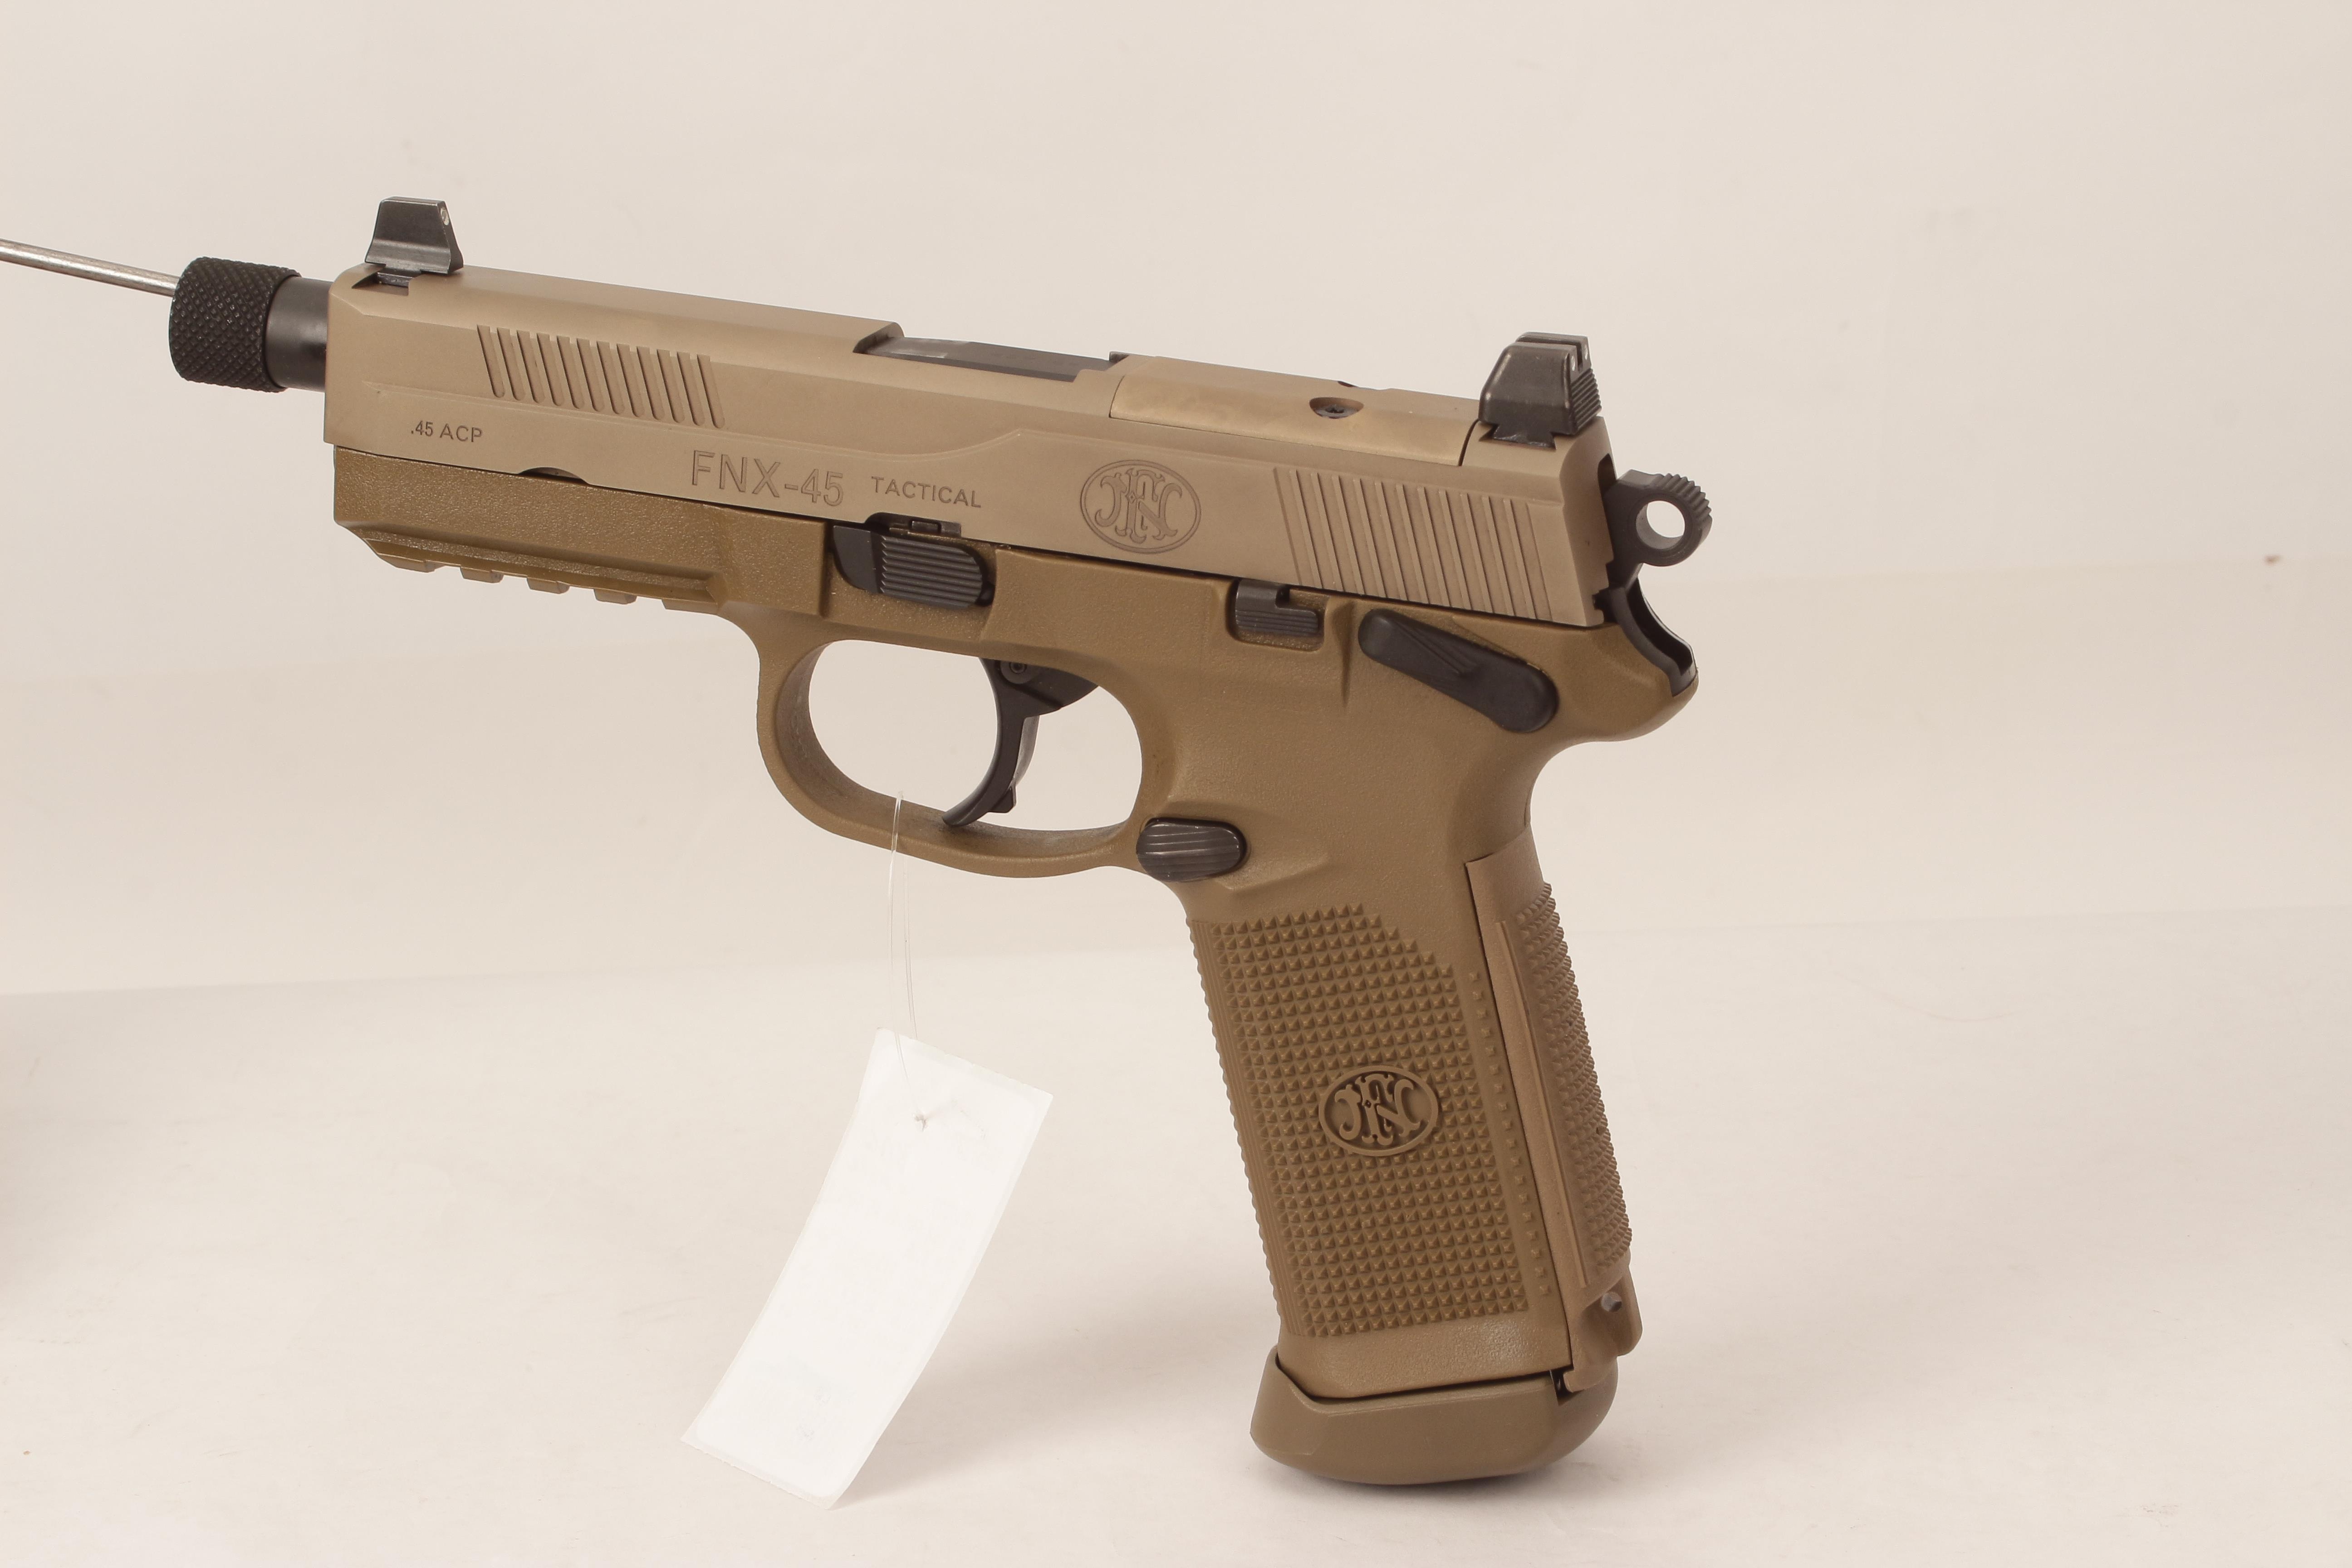 FN 45cal FNV-45 Pistol  Guns > Pistols > FNH - Fabrique Nationale (FN) Pistols > High Power Type